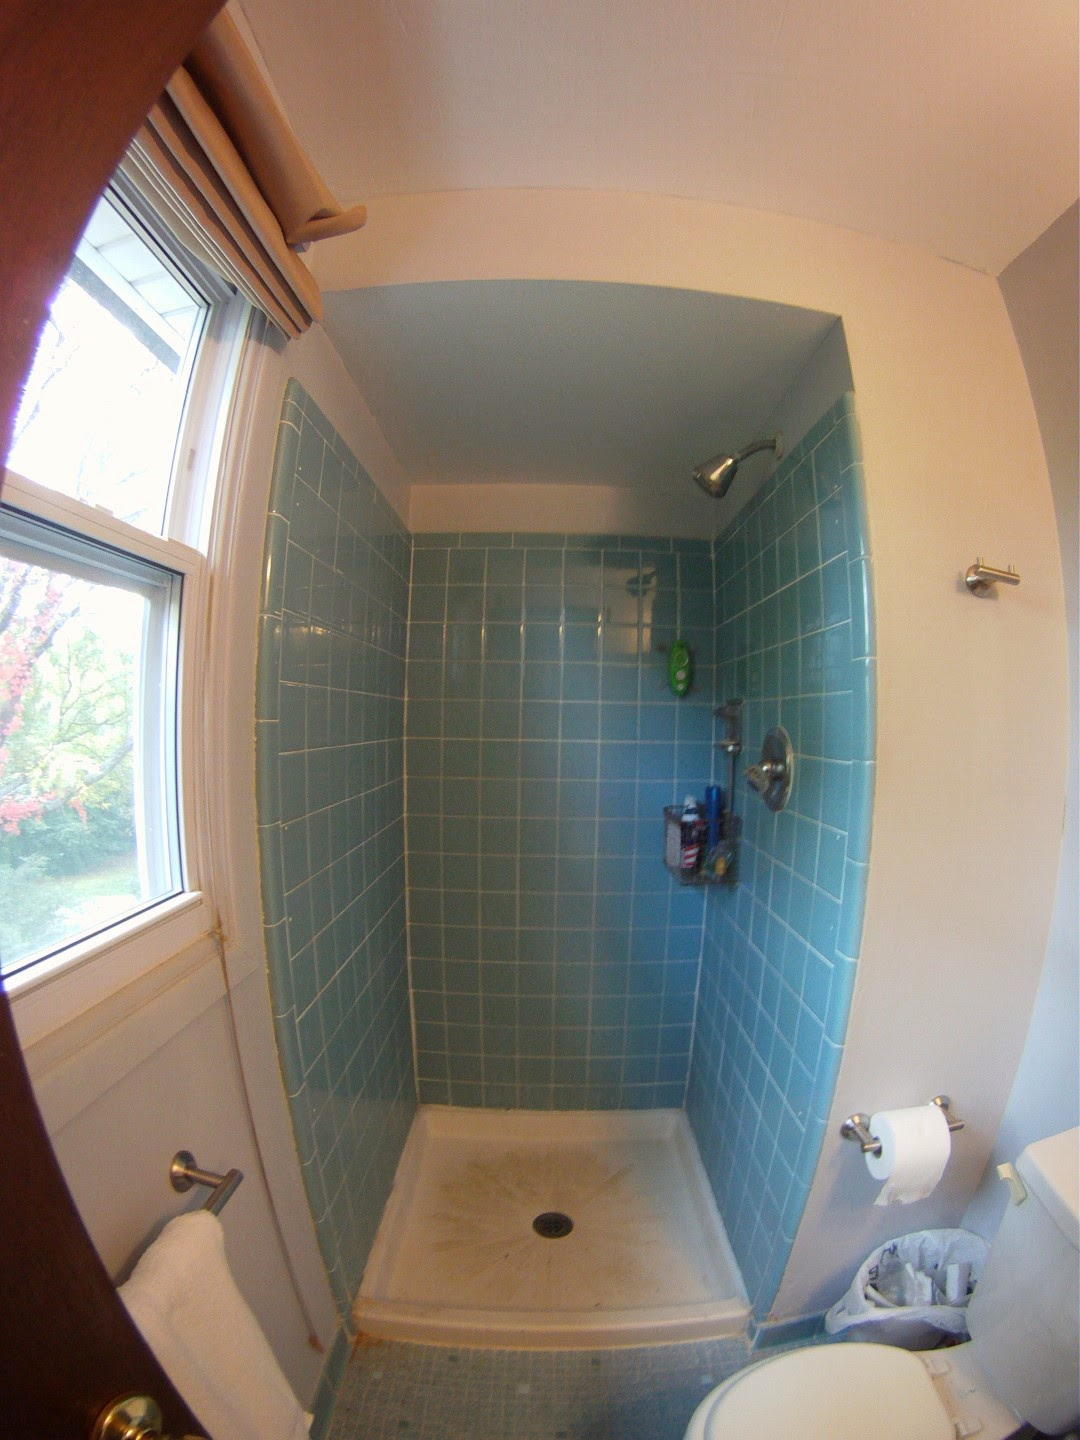 easy tips for remodeling bathroom shower, shower pan